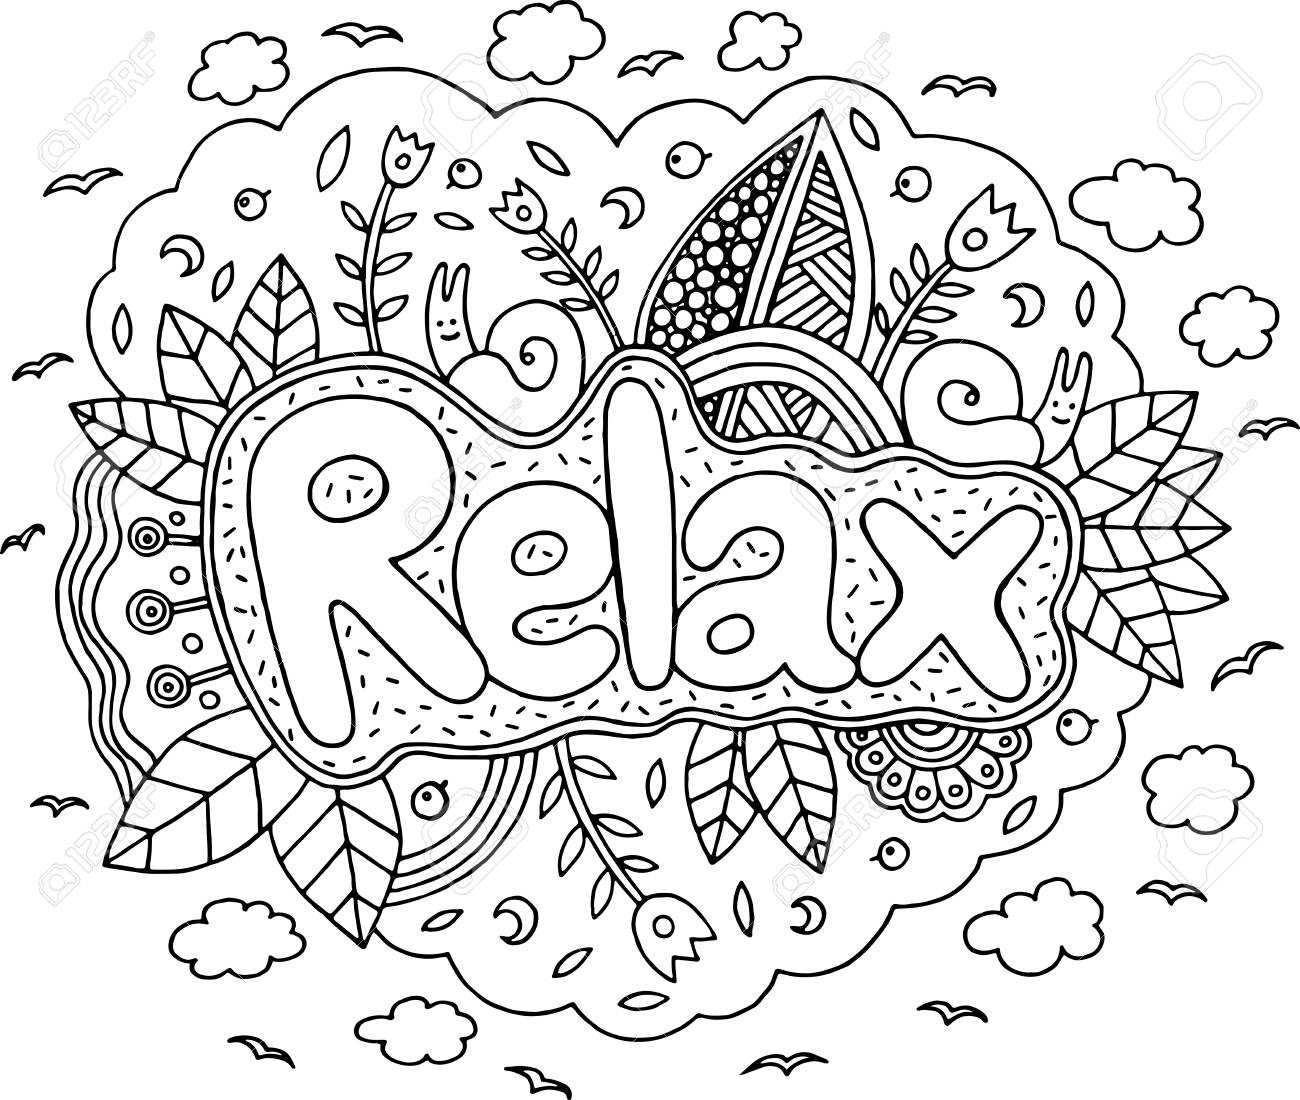 Coloring Page For Adults With Mandala And Relax Word. Doodle ...